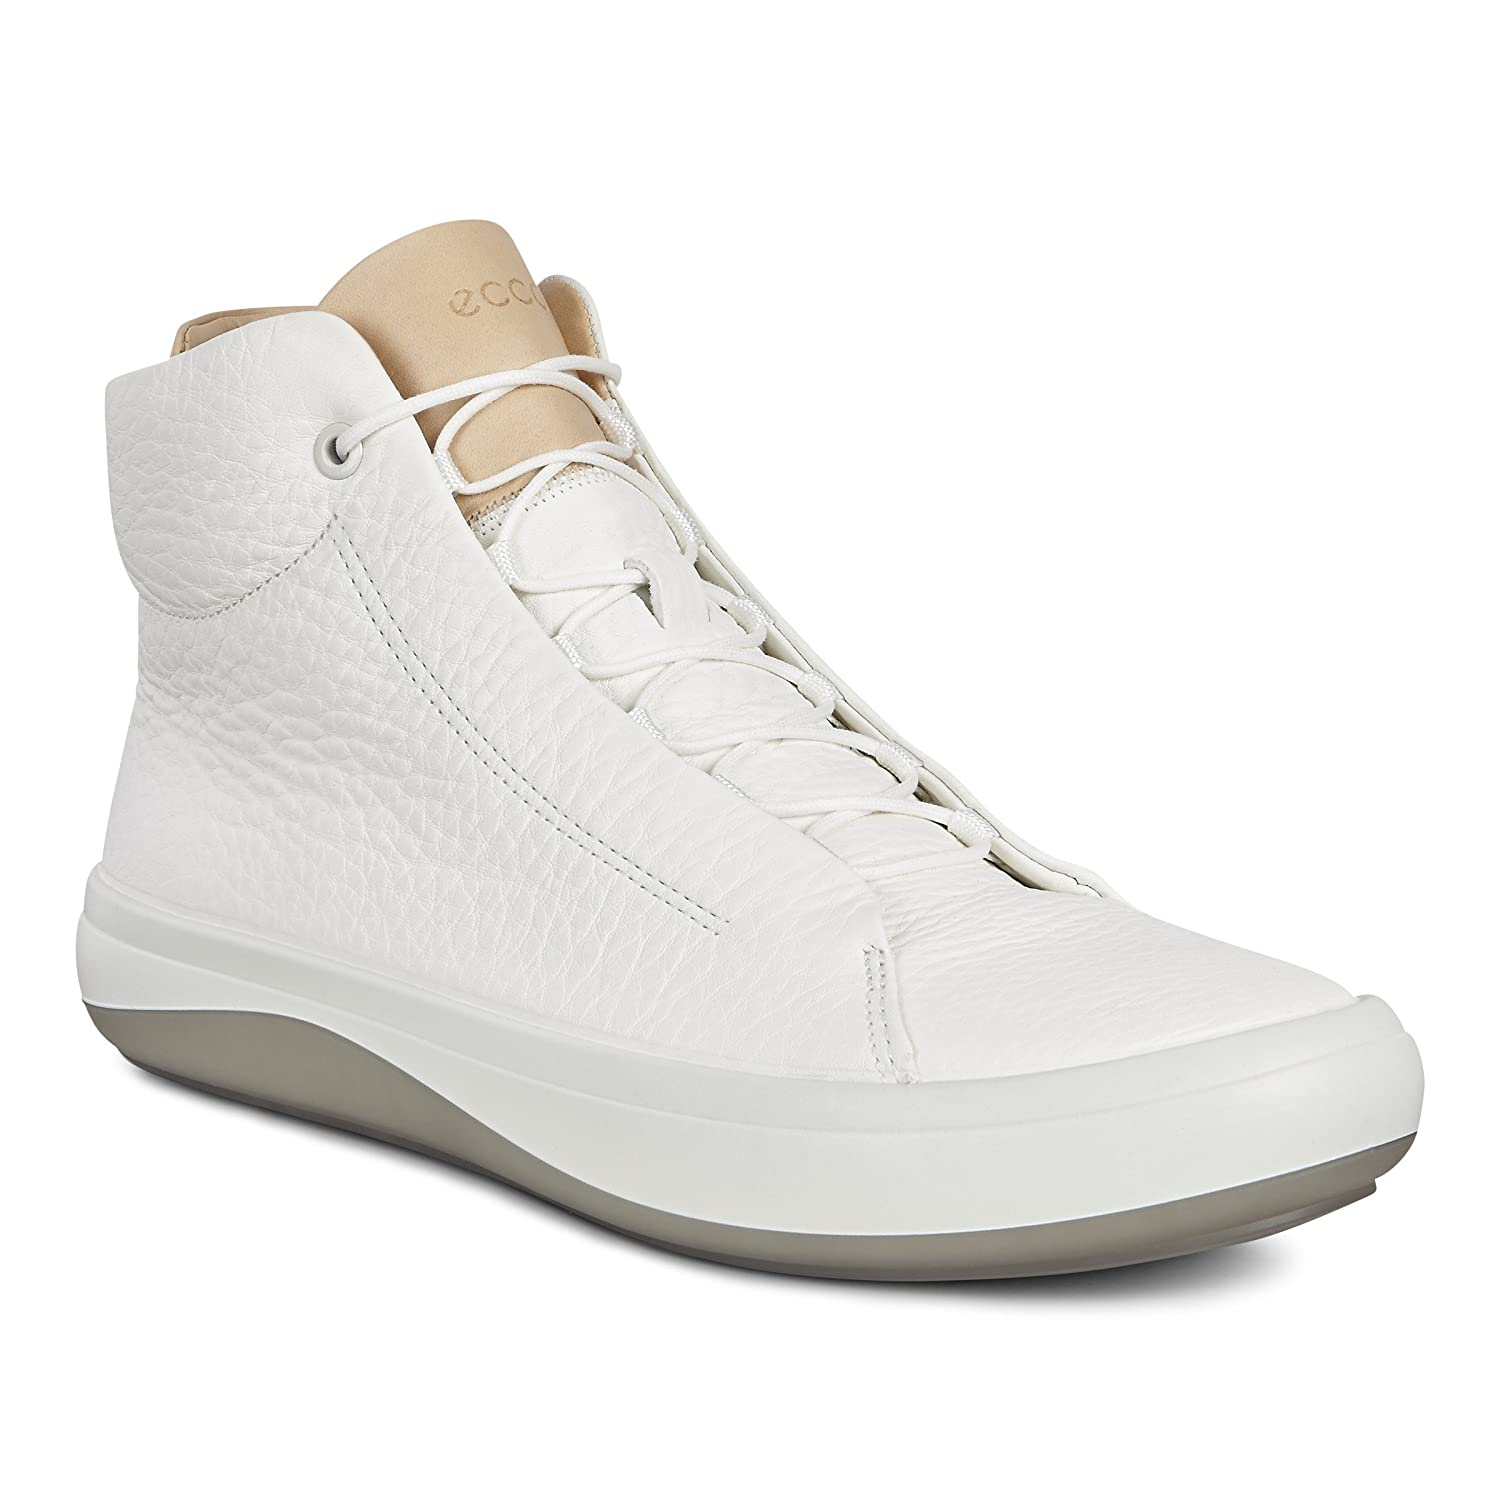 best wholesaler aliexpress temperament shoes ECCO Men's Kinhin High Top Fashion Sneaker, White/Veg Tan ...